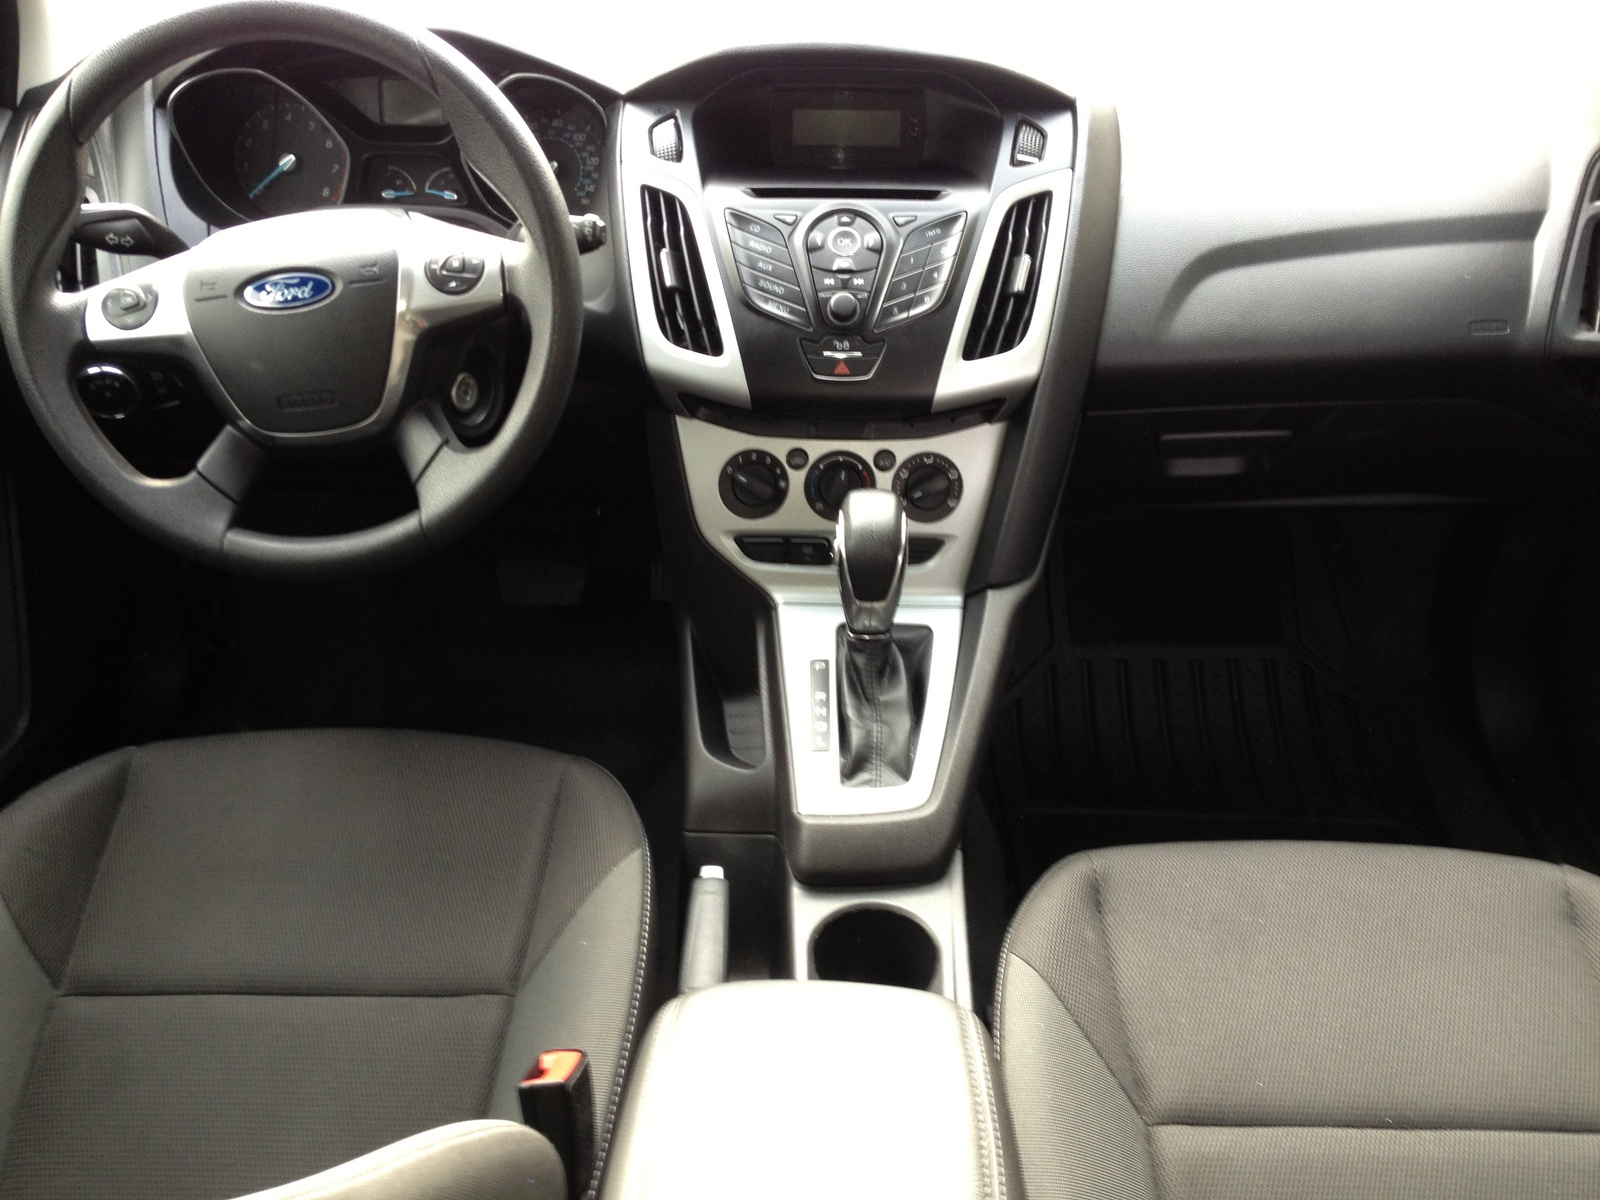 Ford Focus Interior 2005